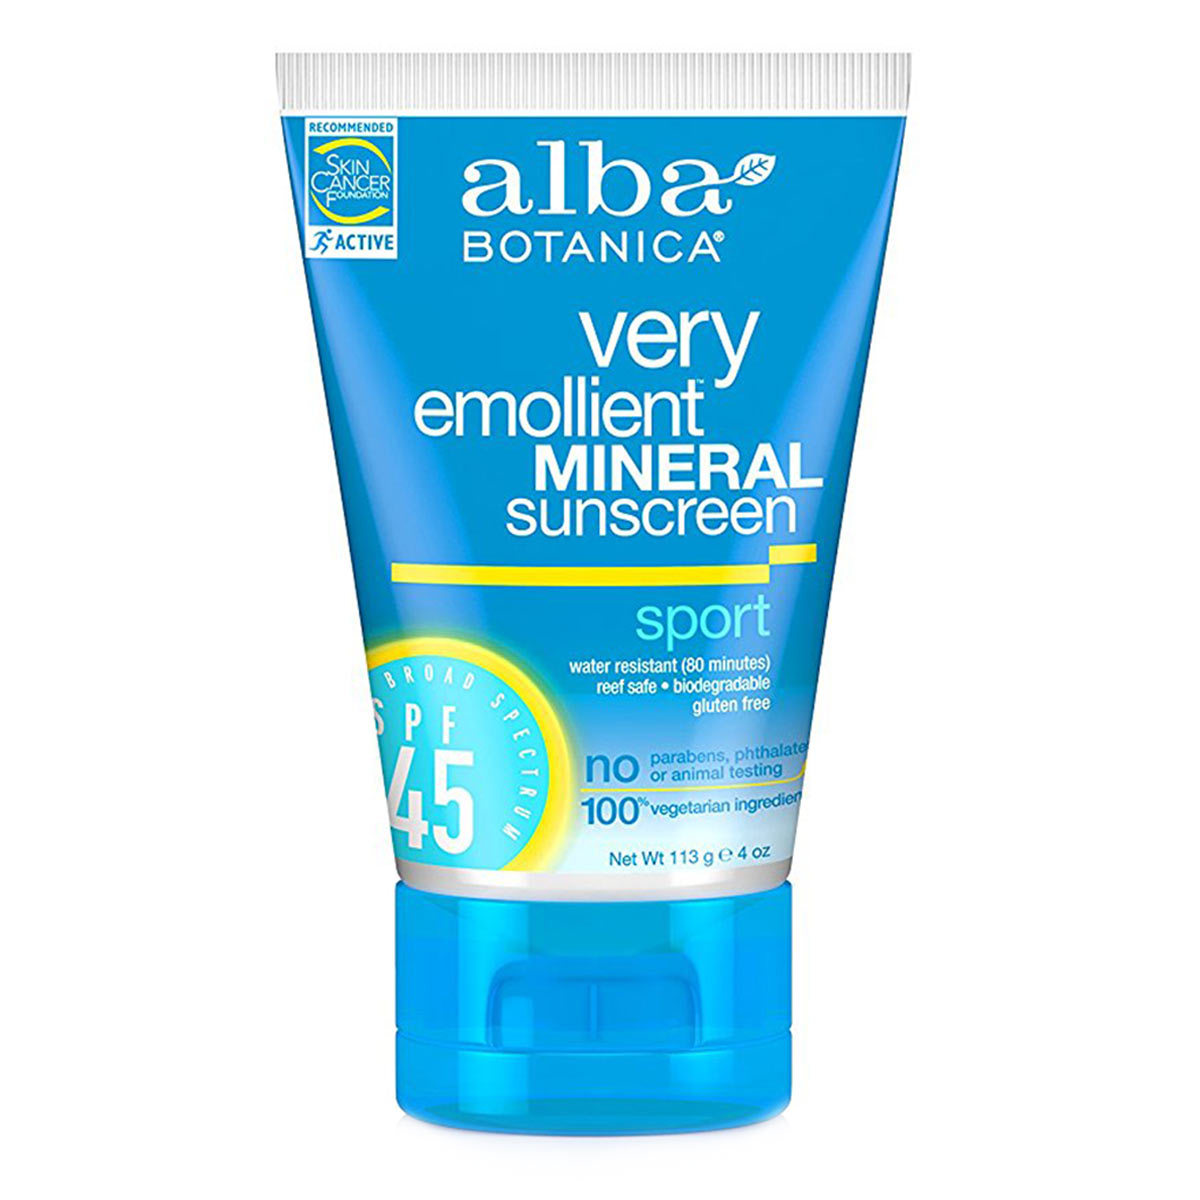 reef-friendly-sunscreen-Alba Botanica Sunscreen Sport Mineral SPF 45